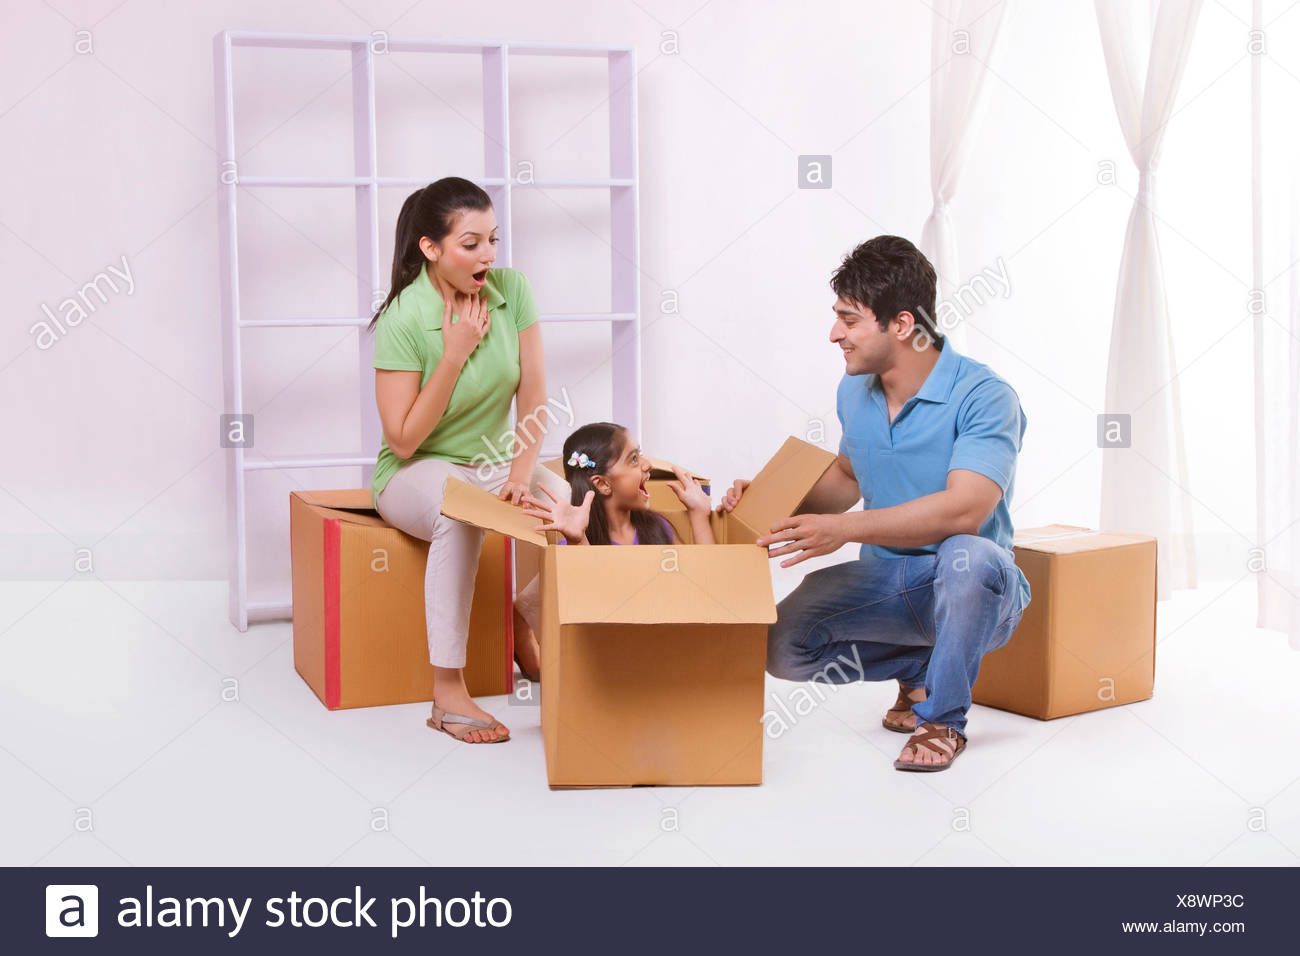 Girl playing hide and seek with parents Stock Photo